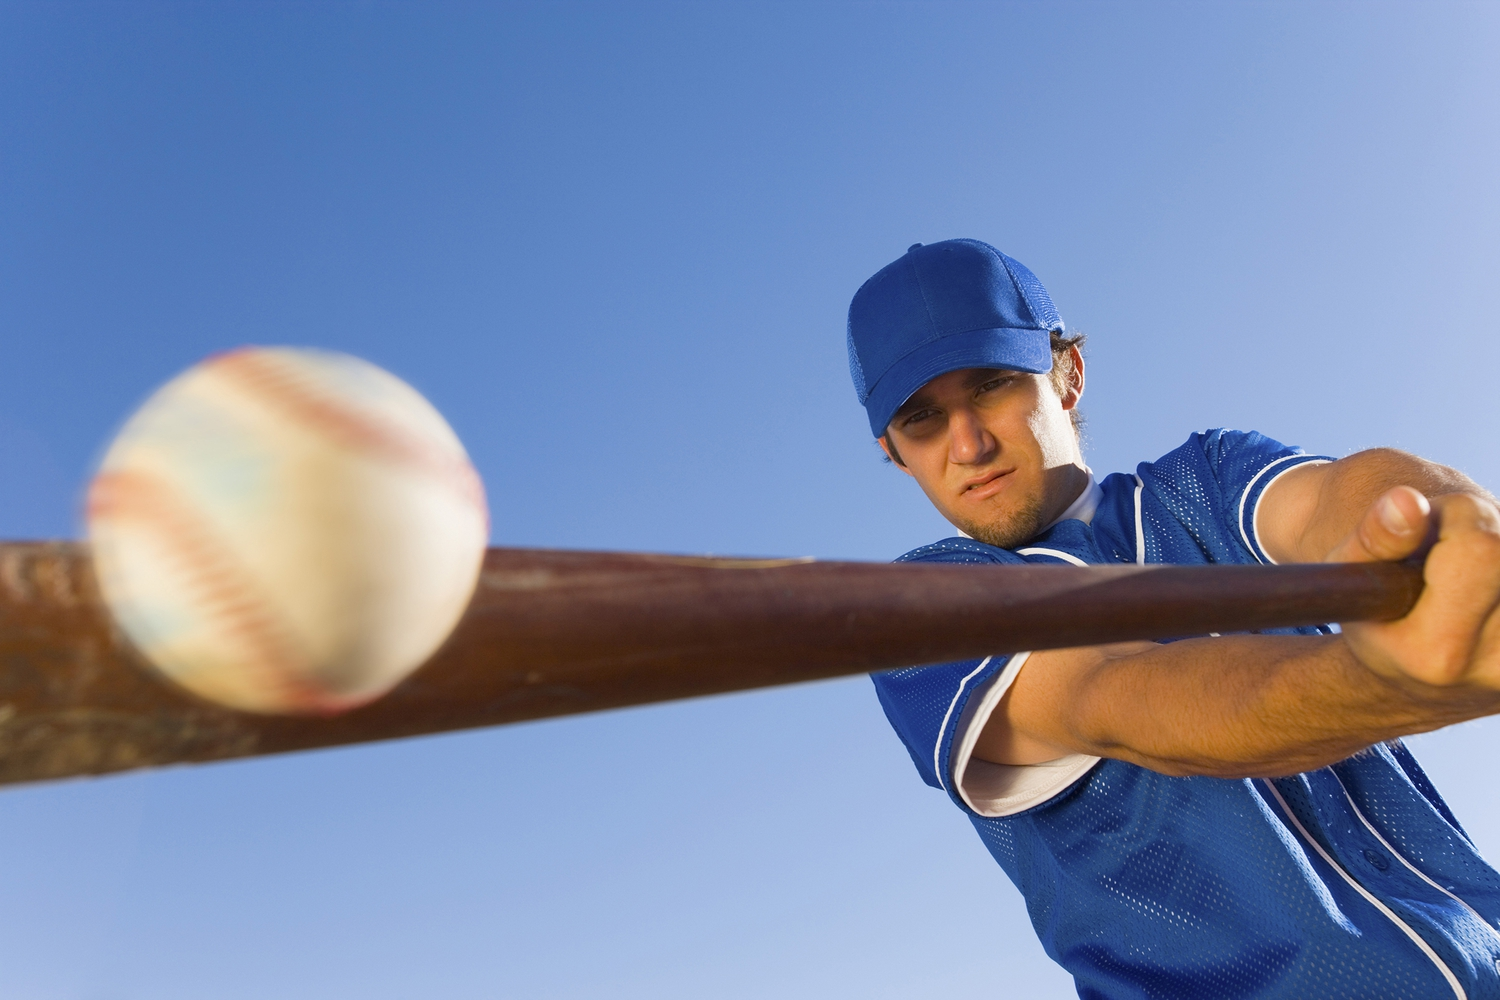 bigstock-Baseball-player-hitting-the-ba-48931298mgz_2560.jpg